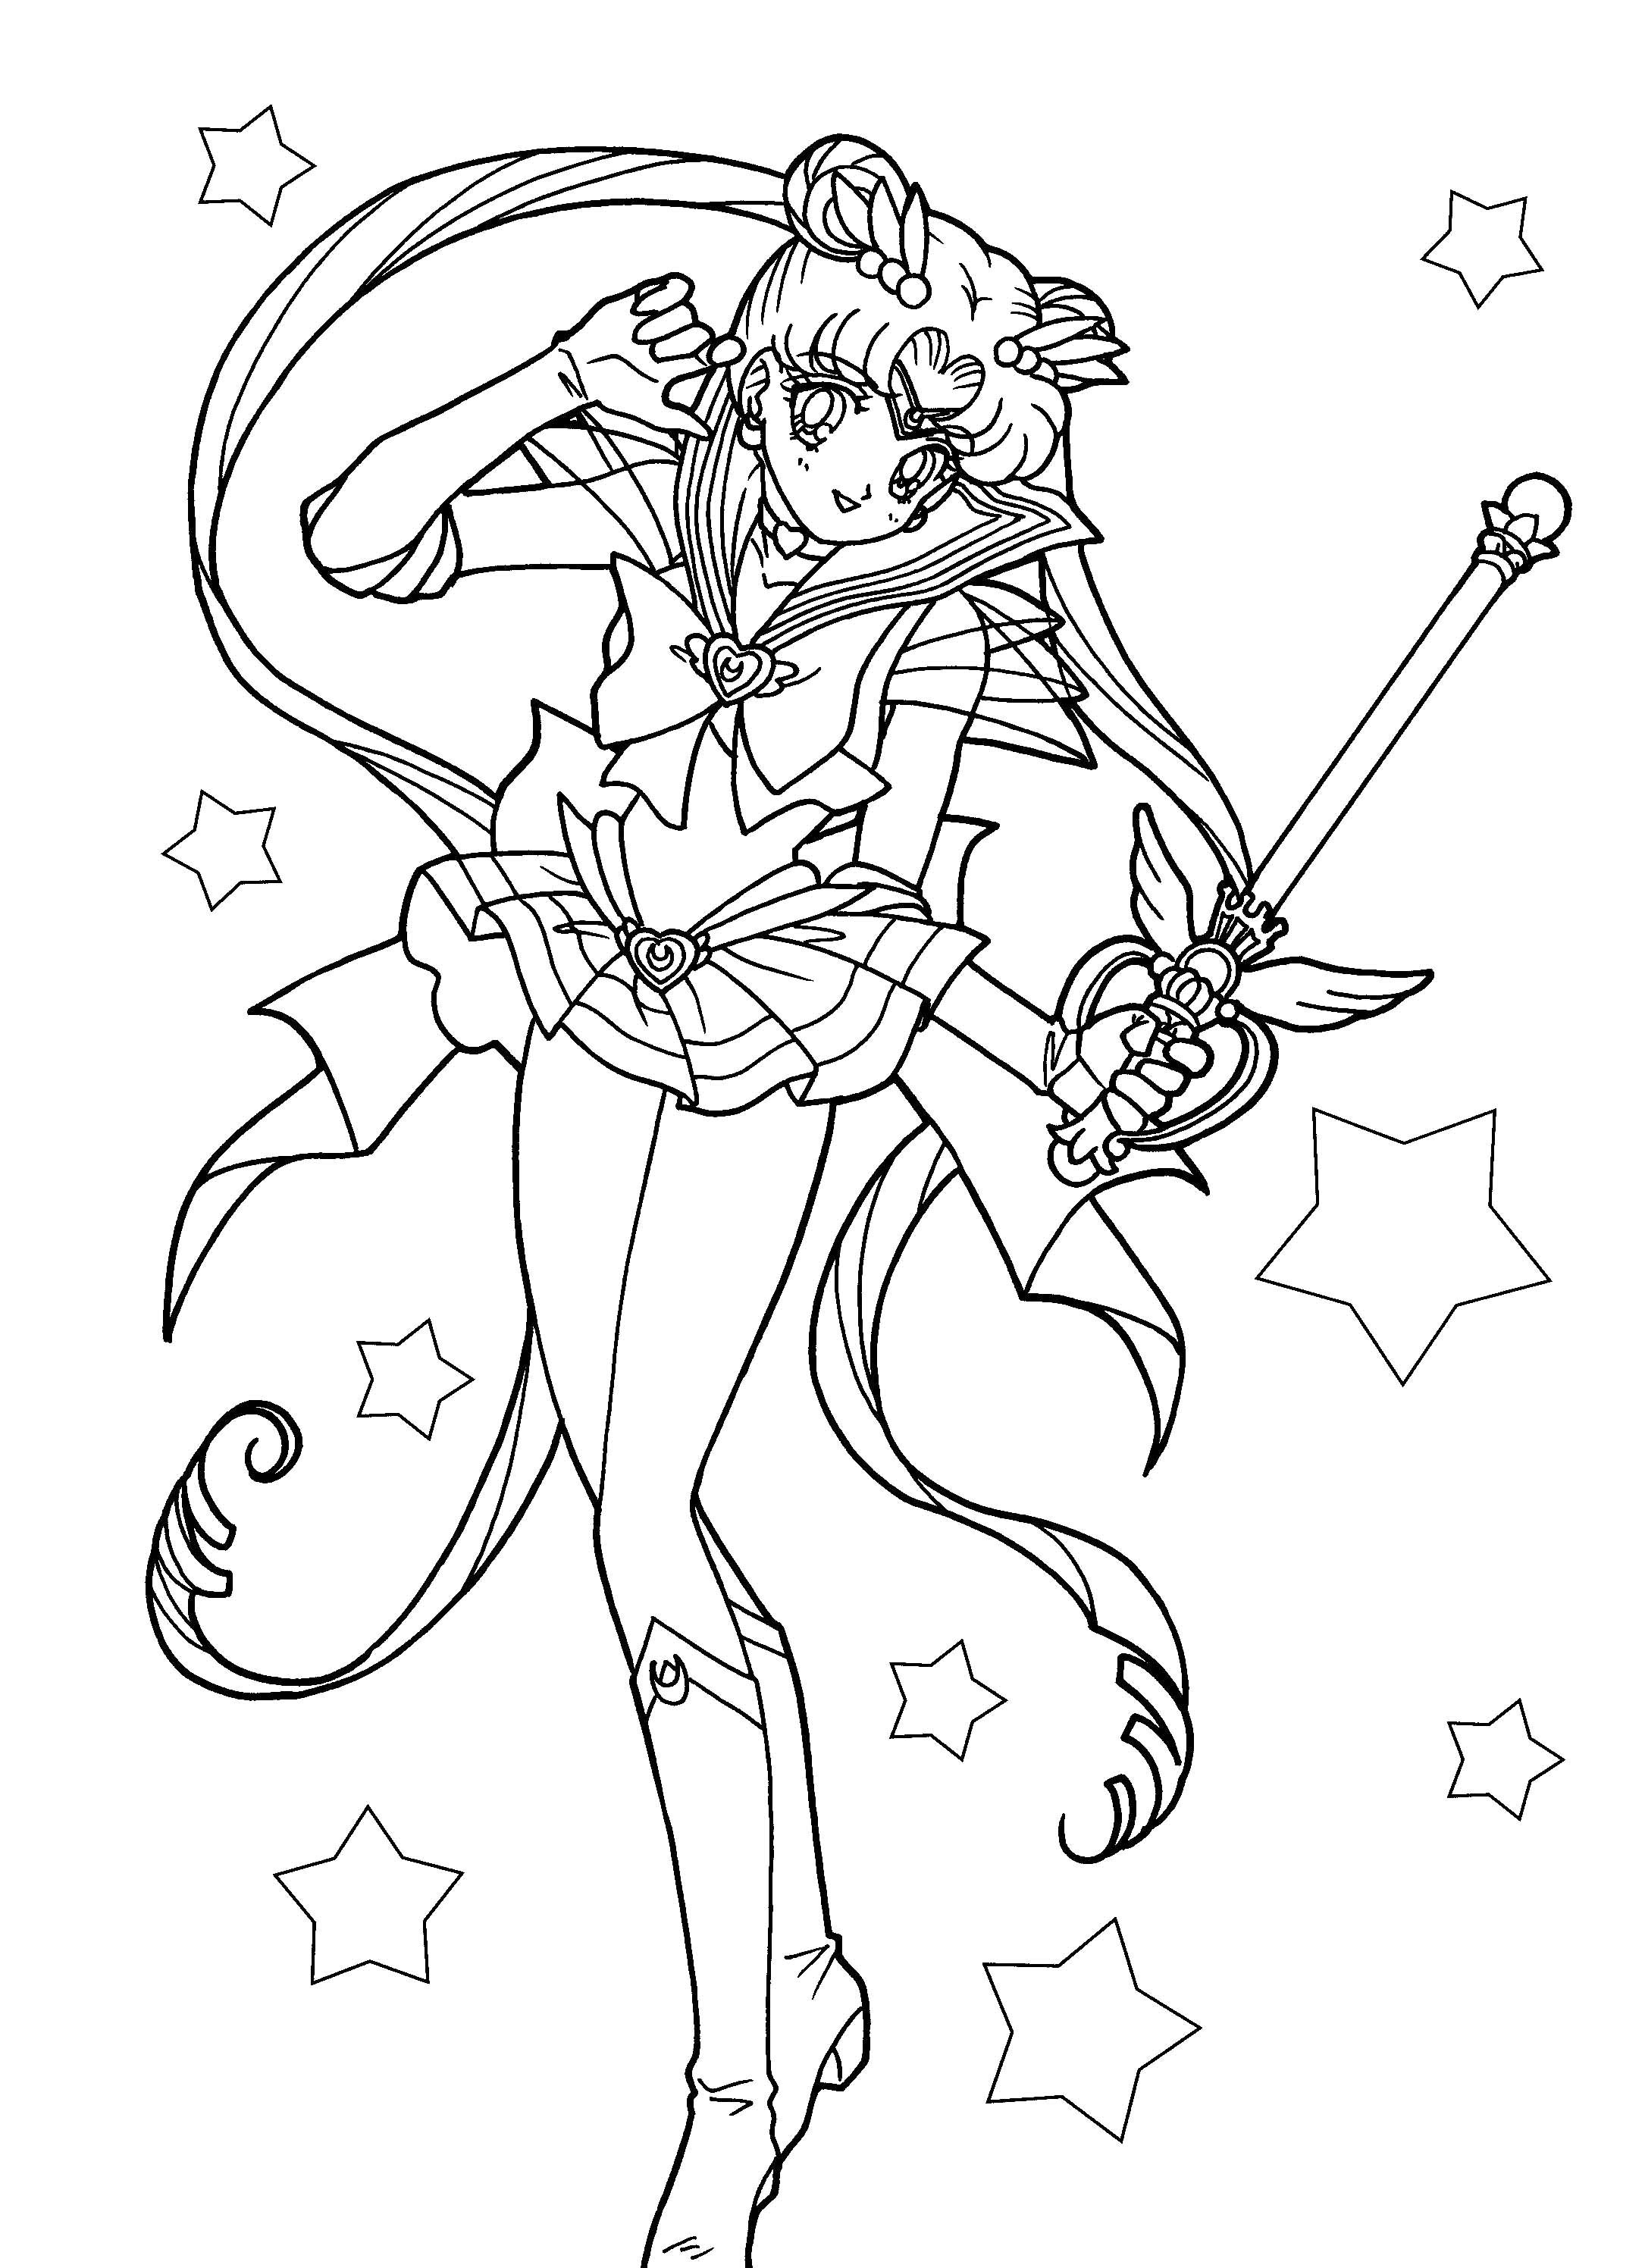 Pin By Seyva Pimentel On Coloring Pages Sailor Moon Coloring Pages